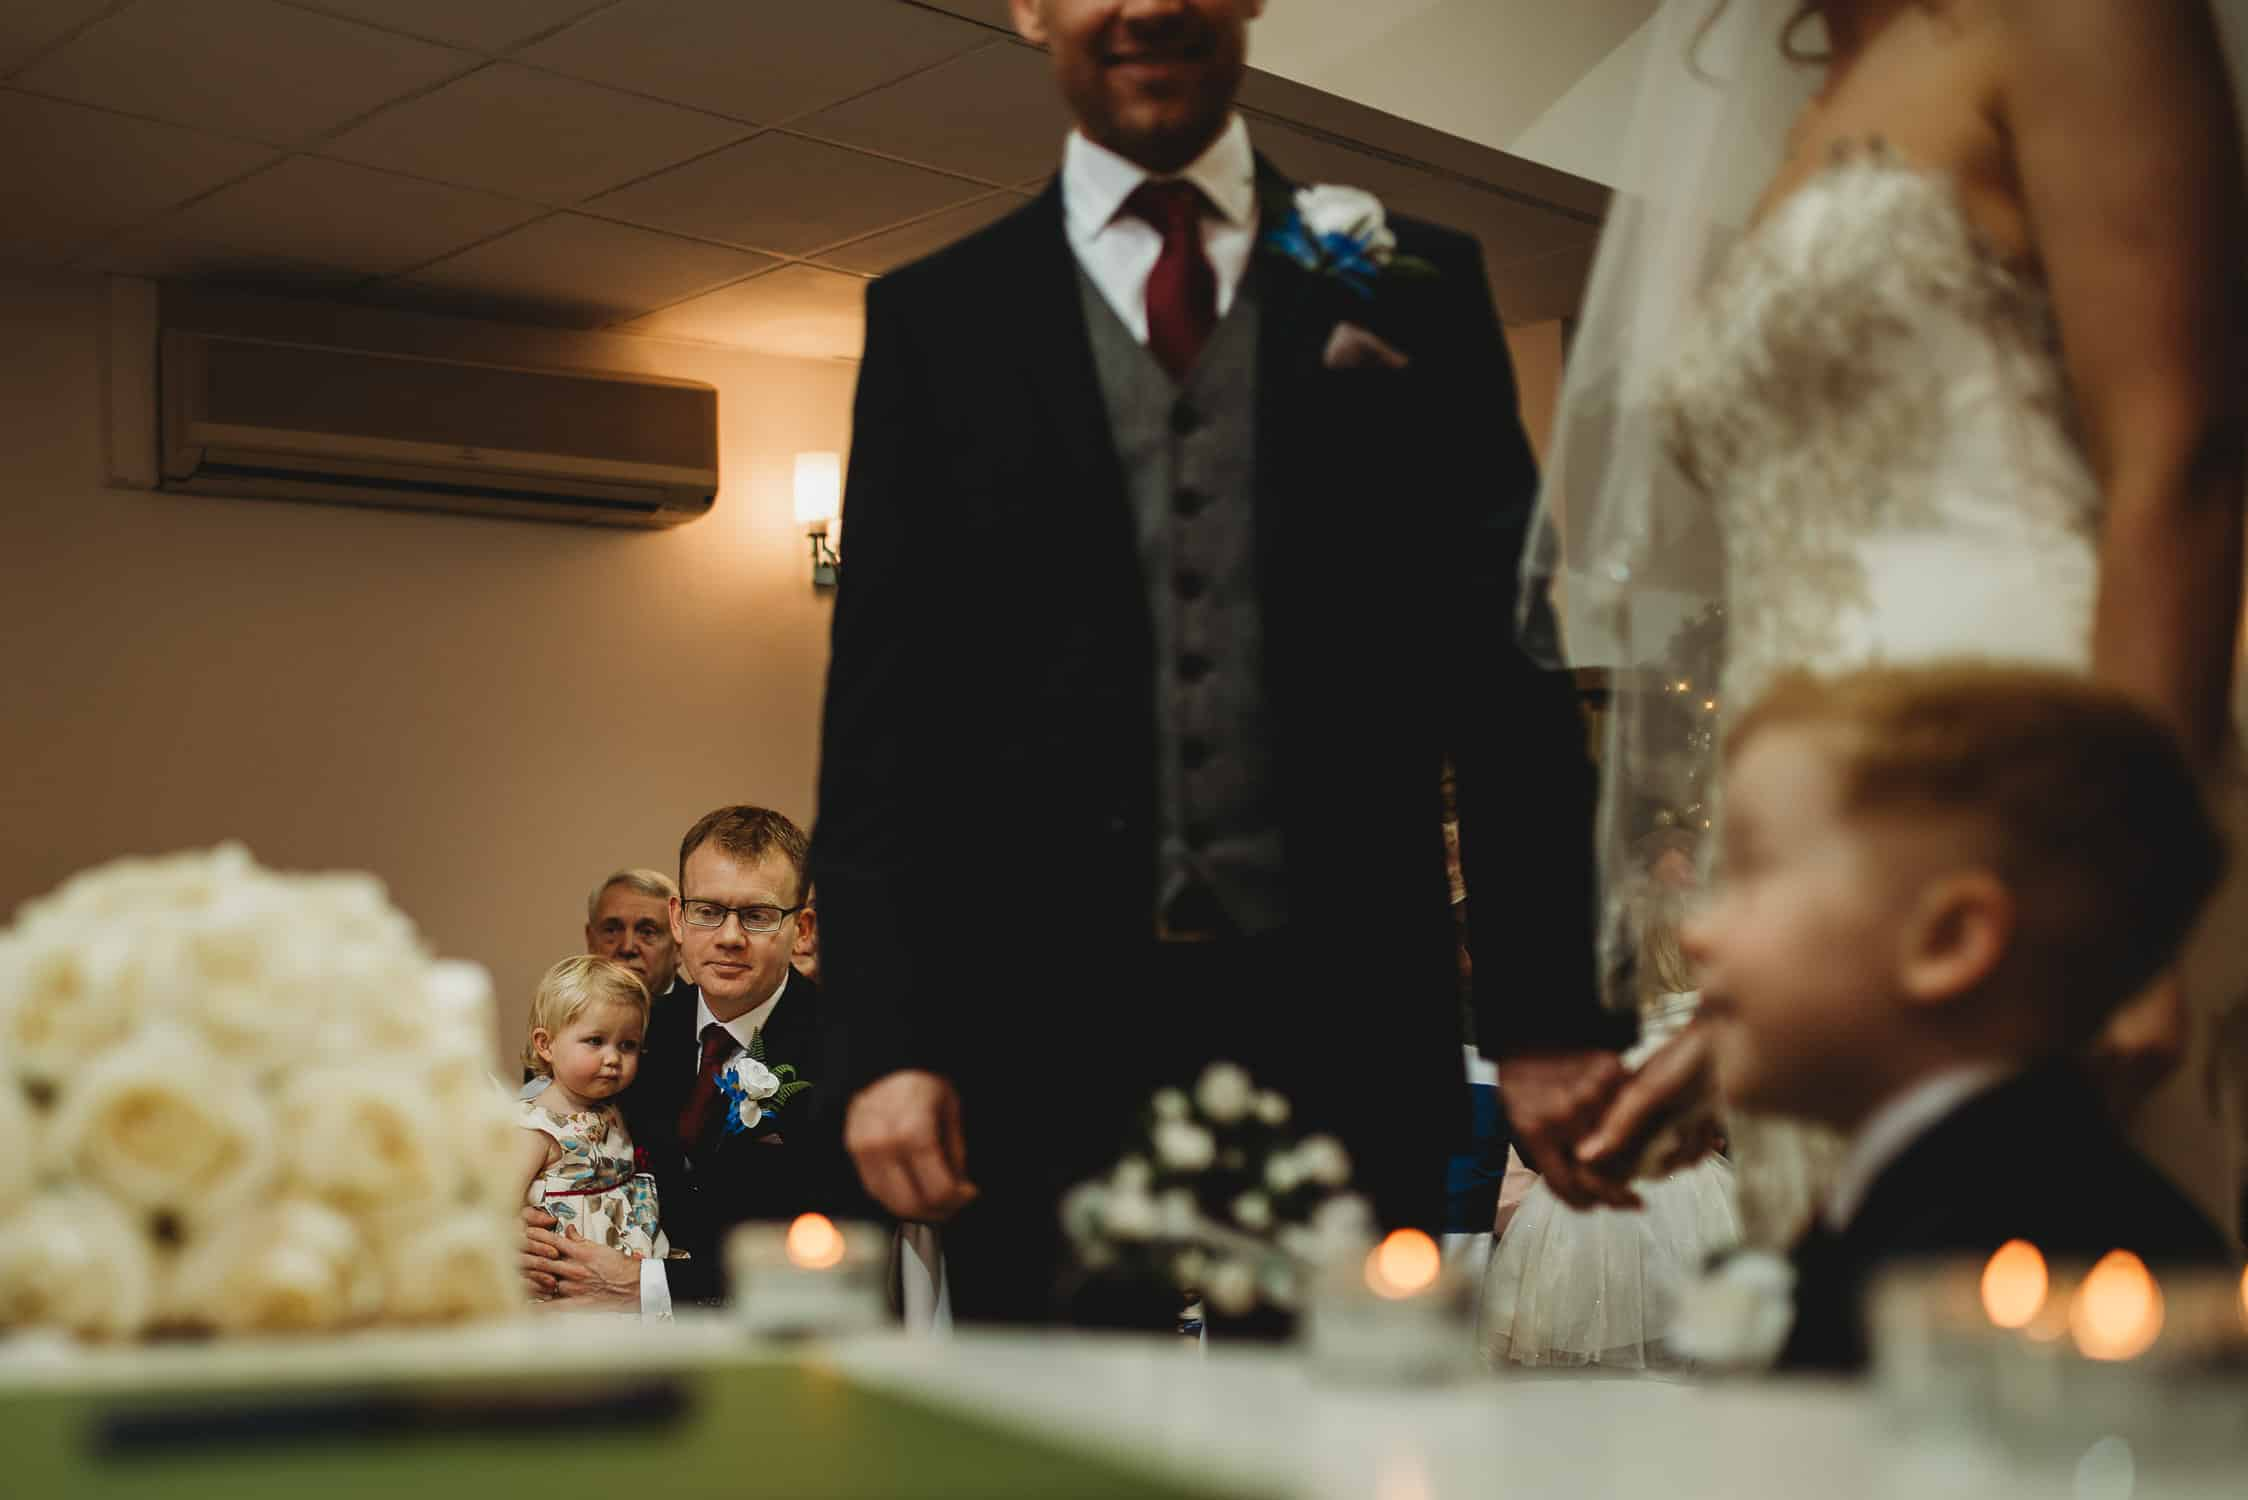 wedding guest holding his daughter during wedding ceremony at Stirk House in Lancashire